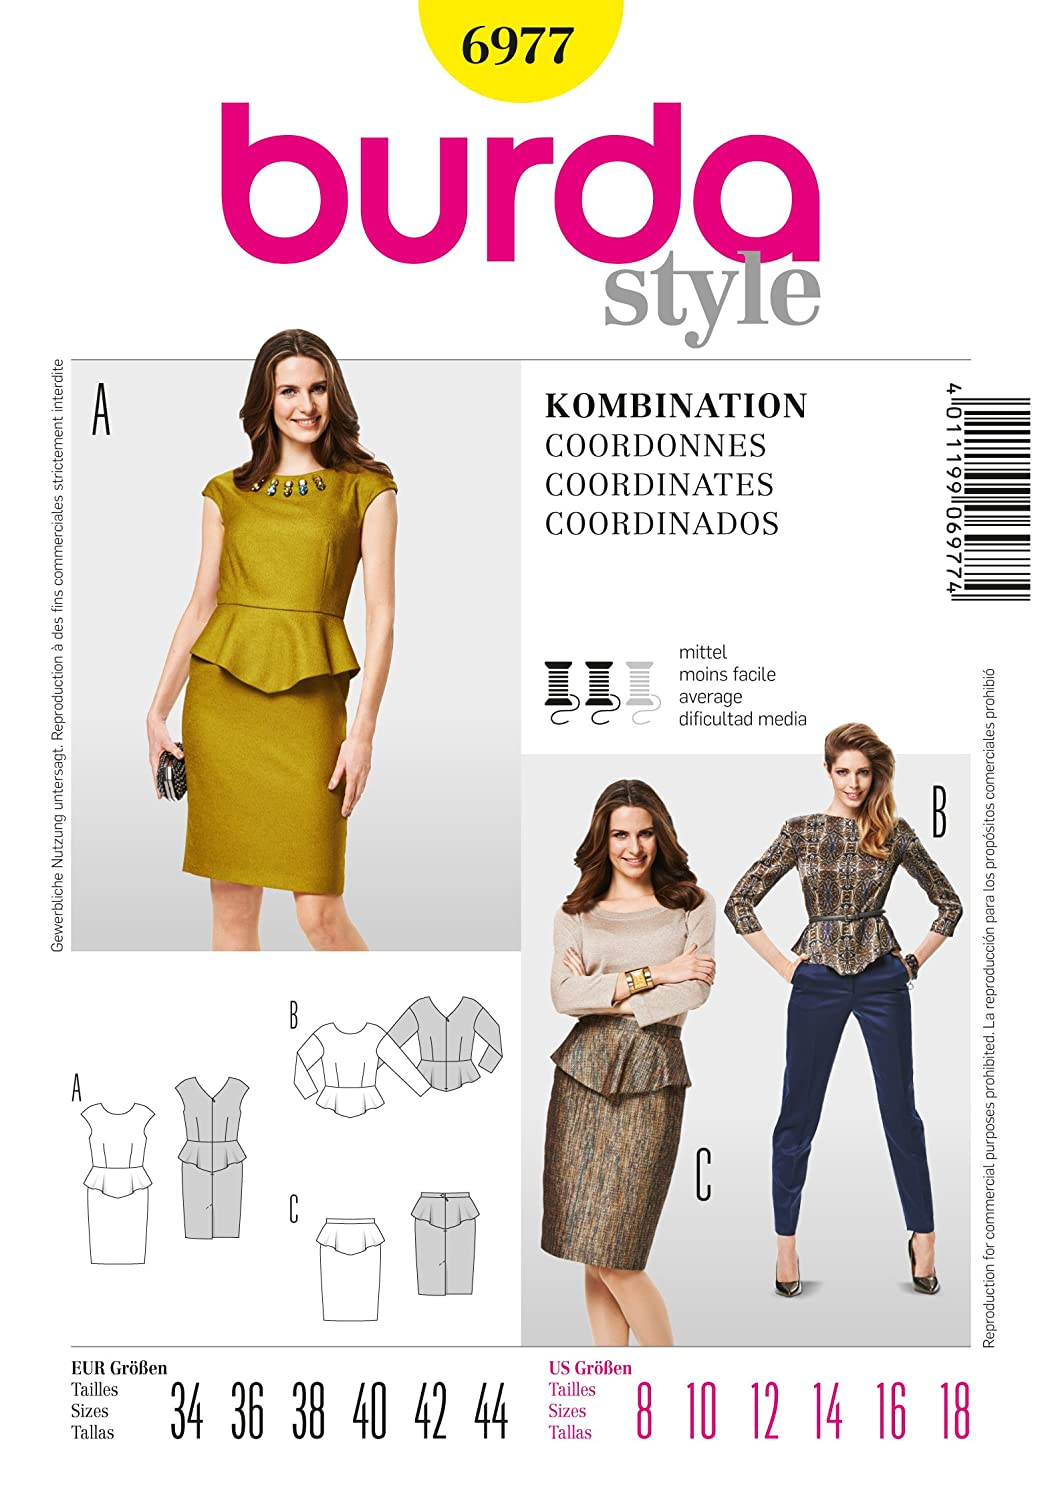 b762df21ec64 Amazon.com: Burda Coordinates Sewing Pattern 6977 - Coordinates Sizes: 8-18:  Kitchen & Dining